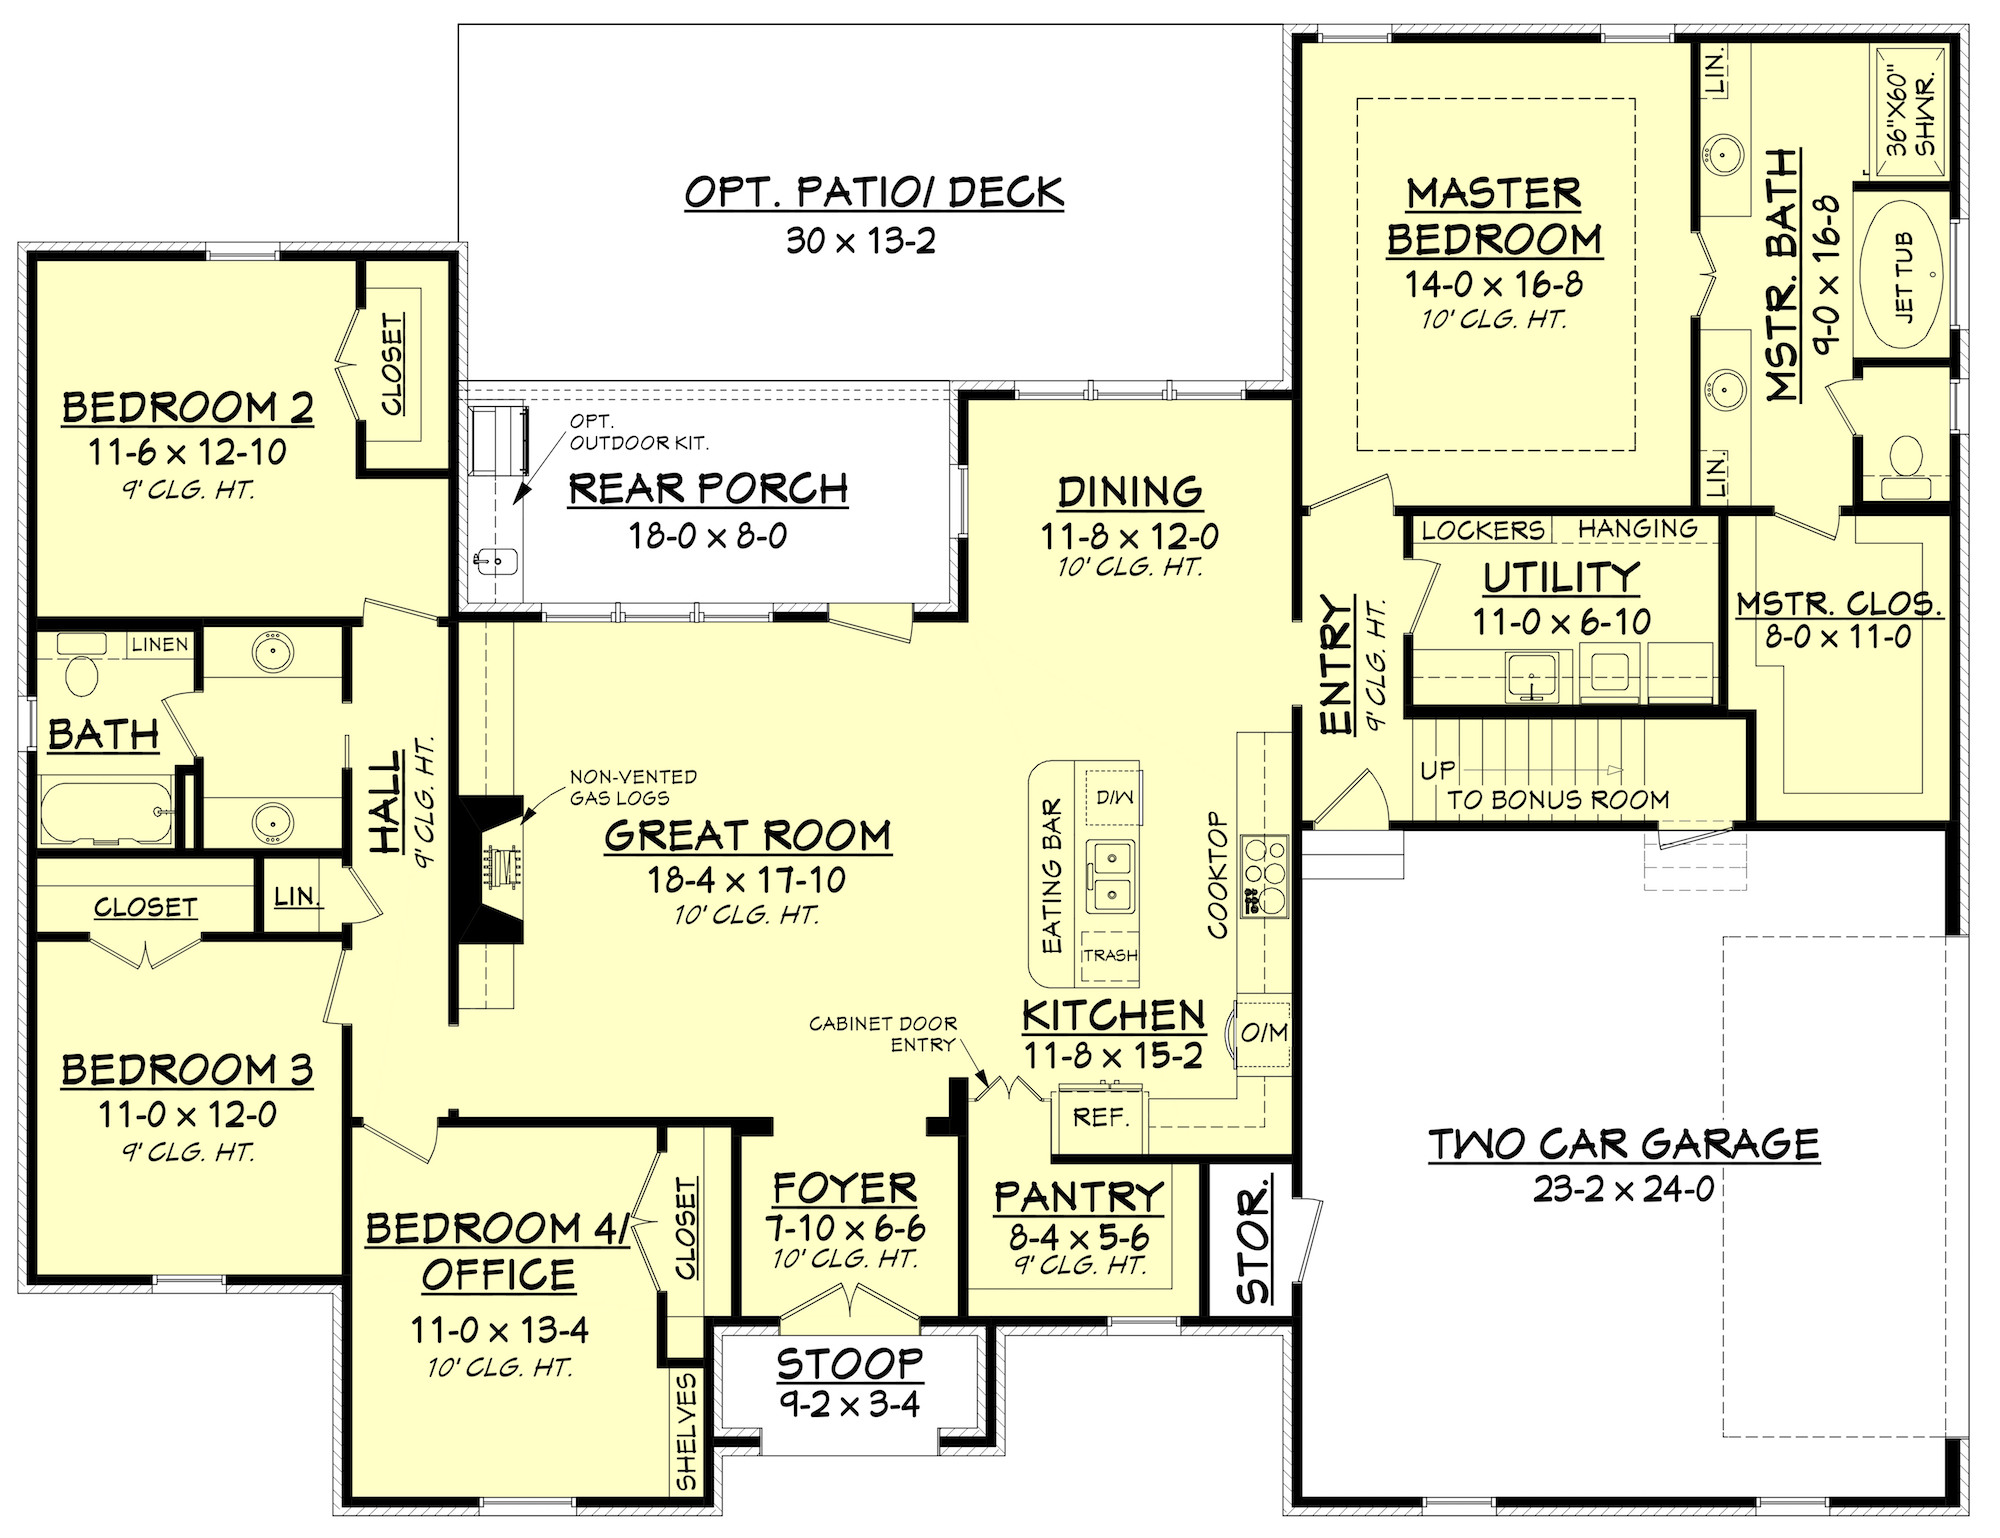 Acadian house plan 142 1154 4 bedrm 2210 sq ft home plan for House layout program